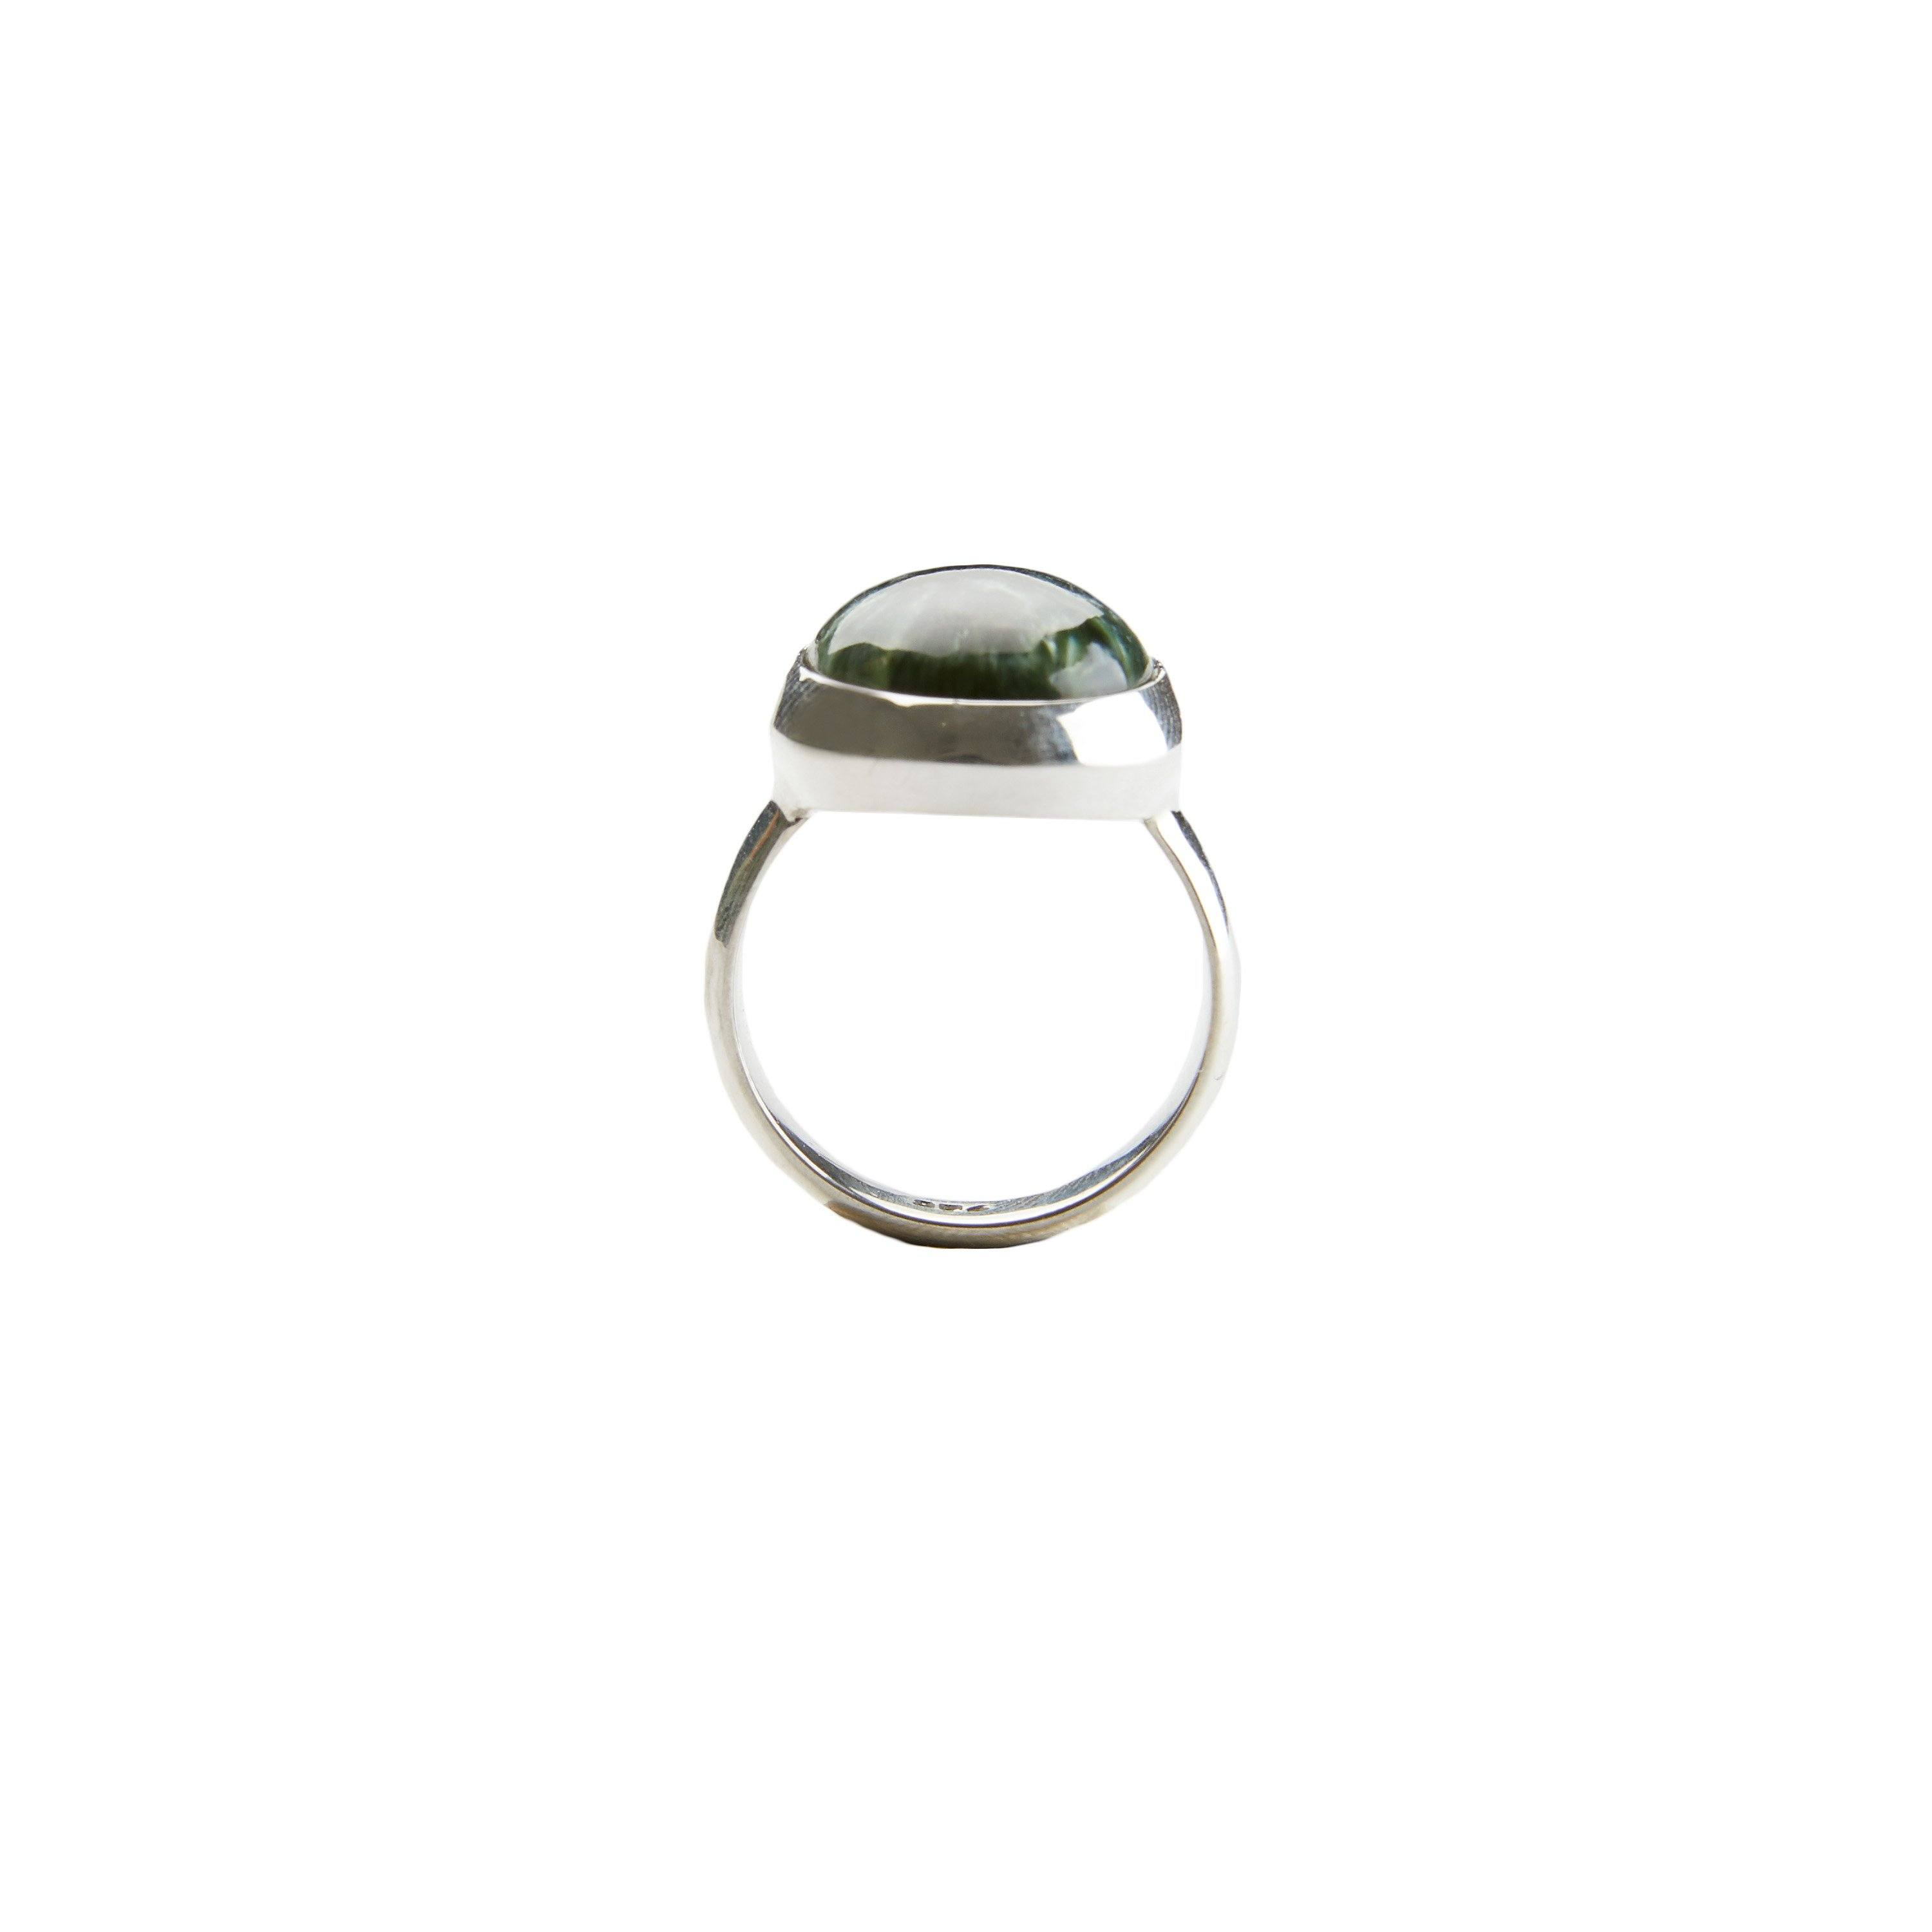 Seraphinite ring silver and gold handmade from Santai.no